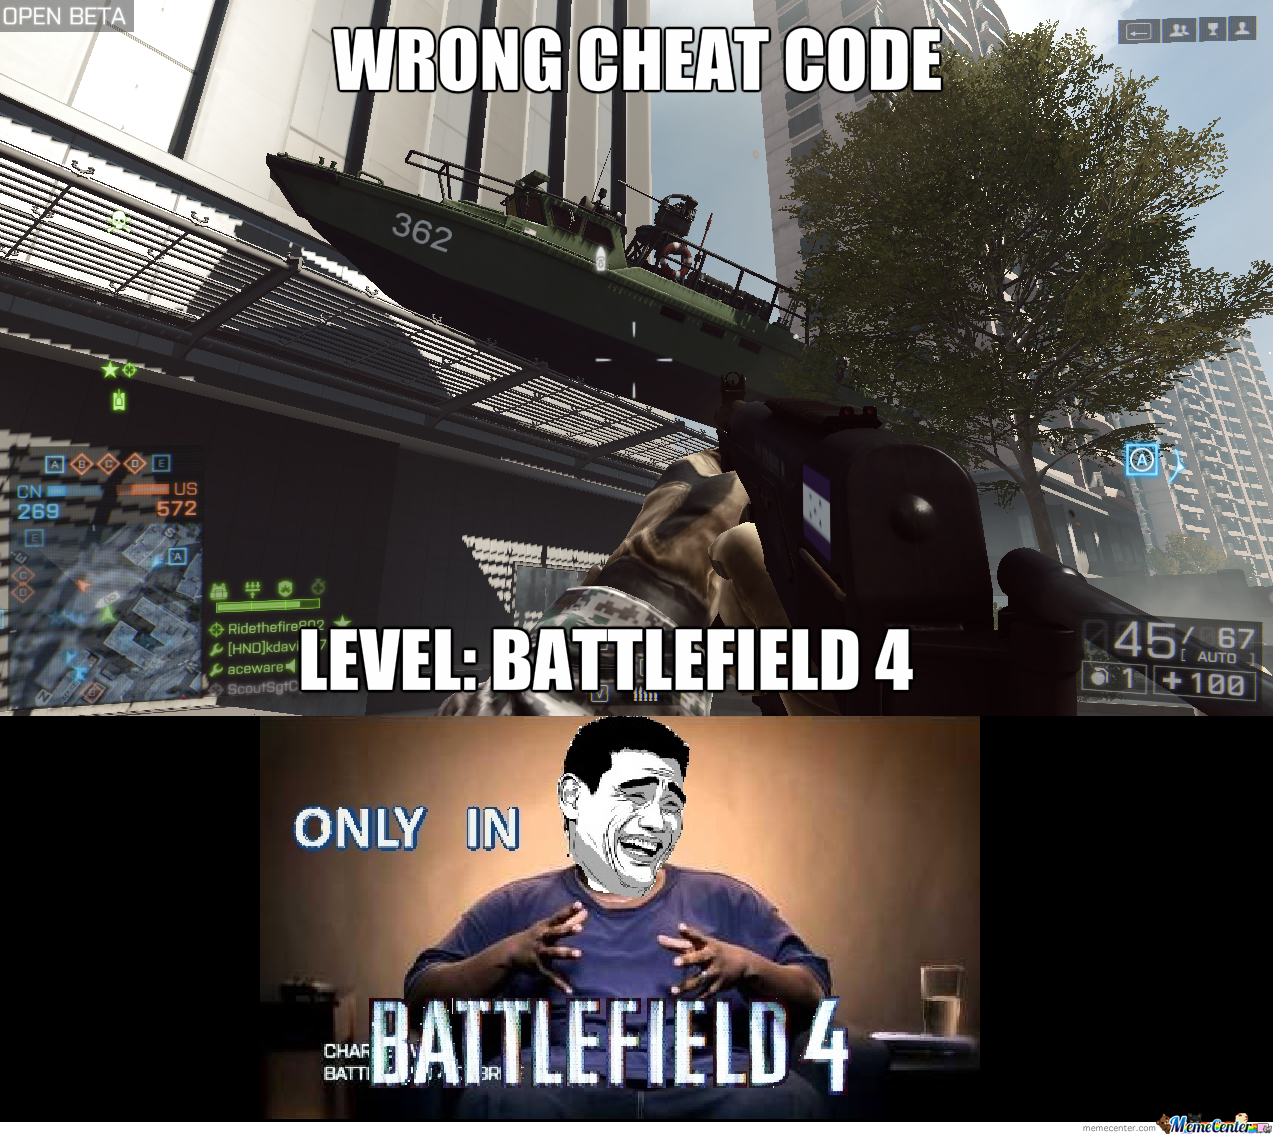 Only In Battlefield 4, #4 - The Cheat Codes